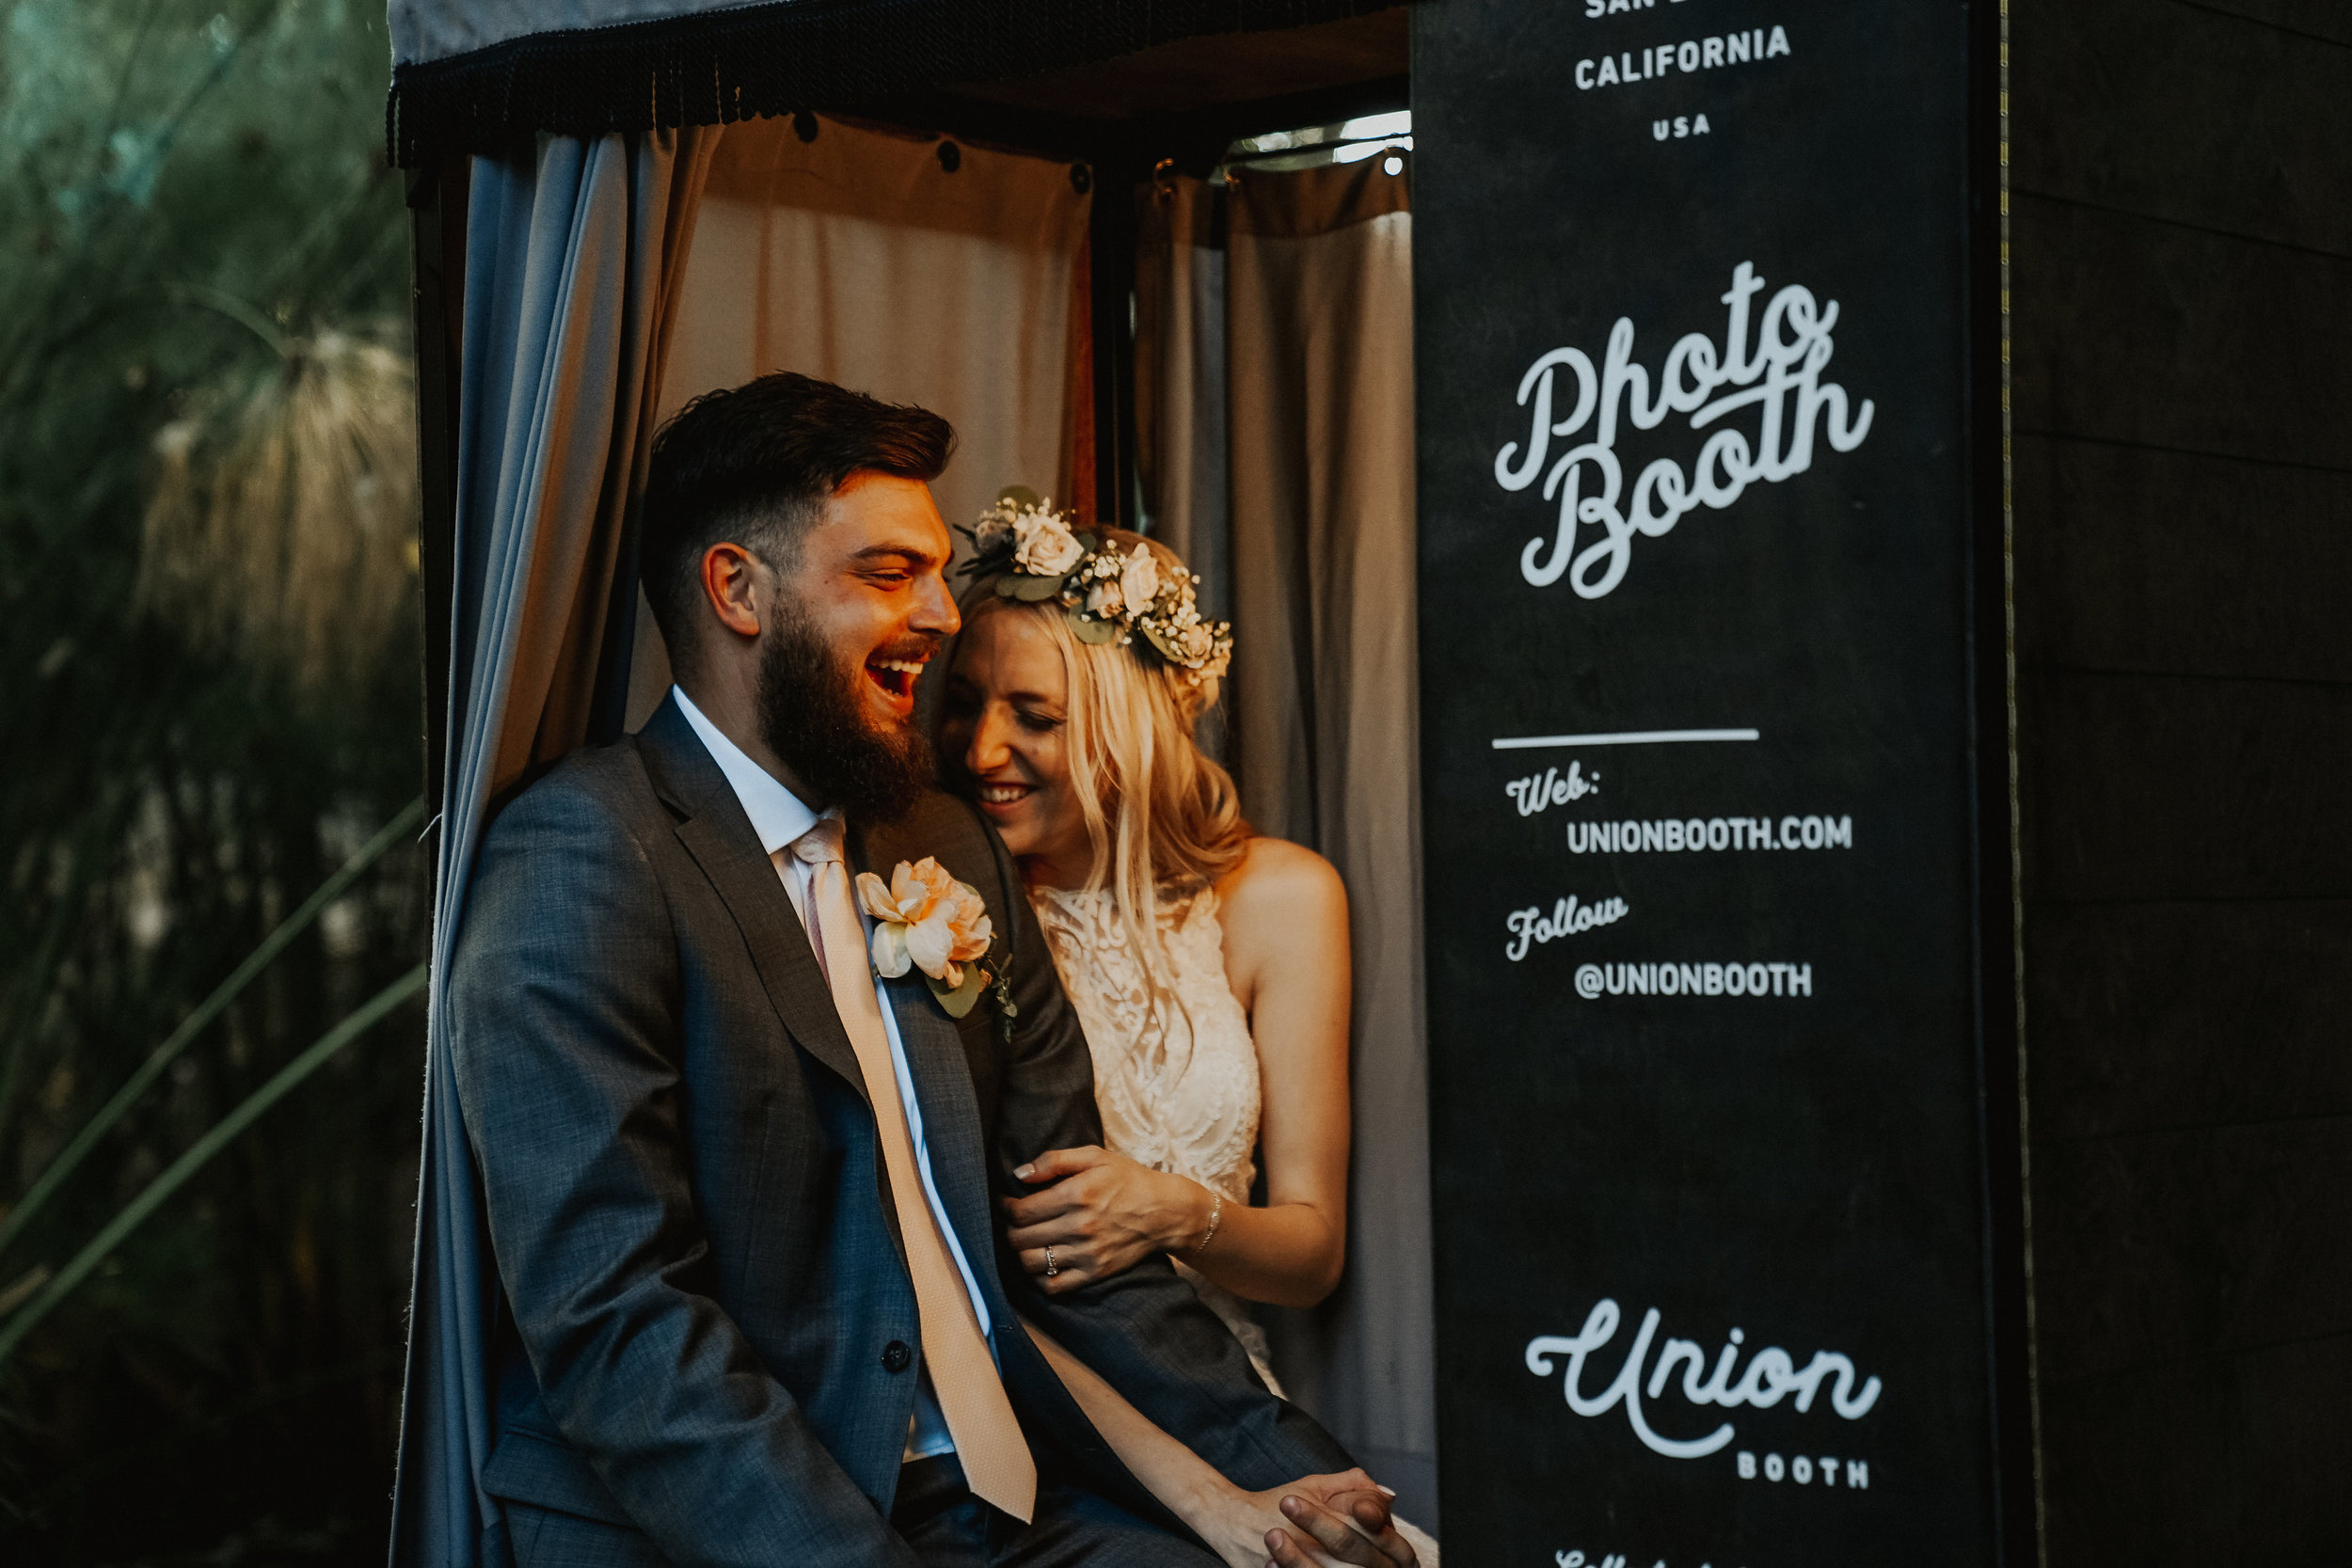 Vintage style wedding photo booth by Union Booth California